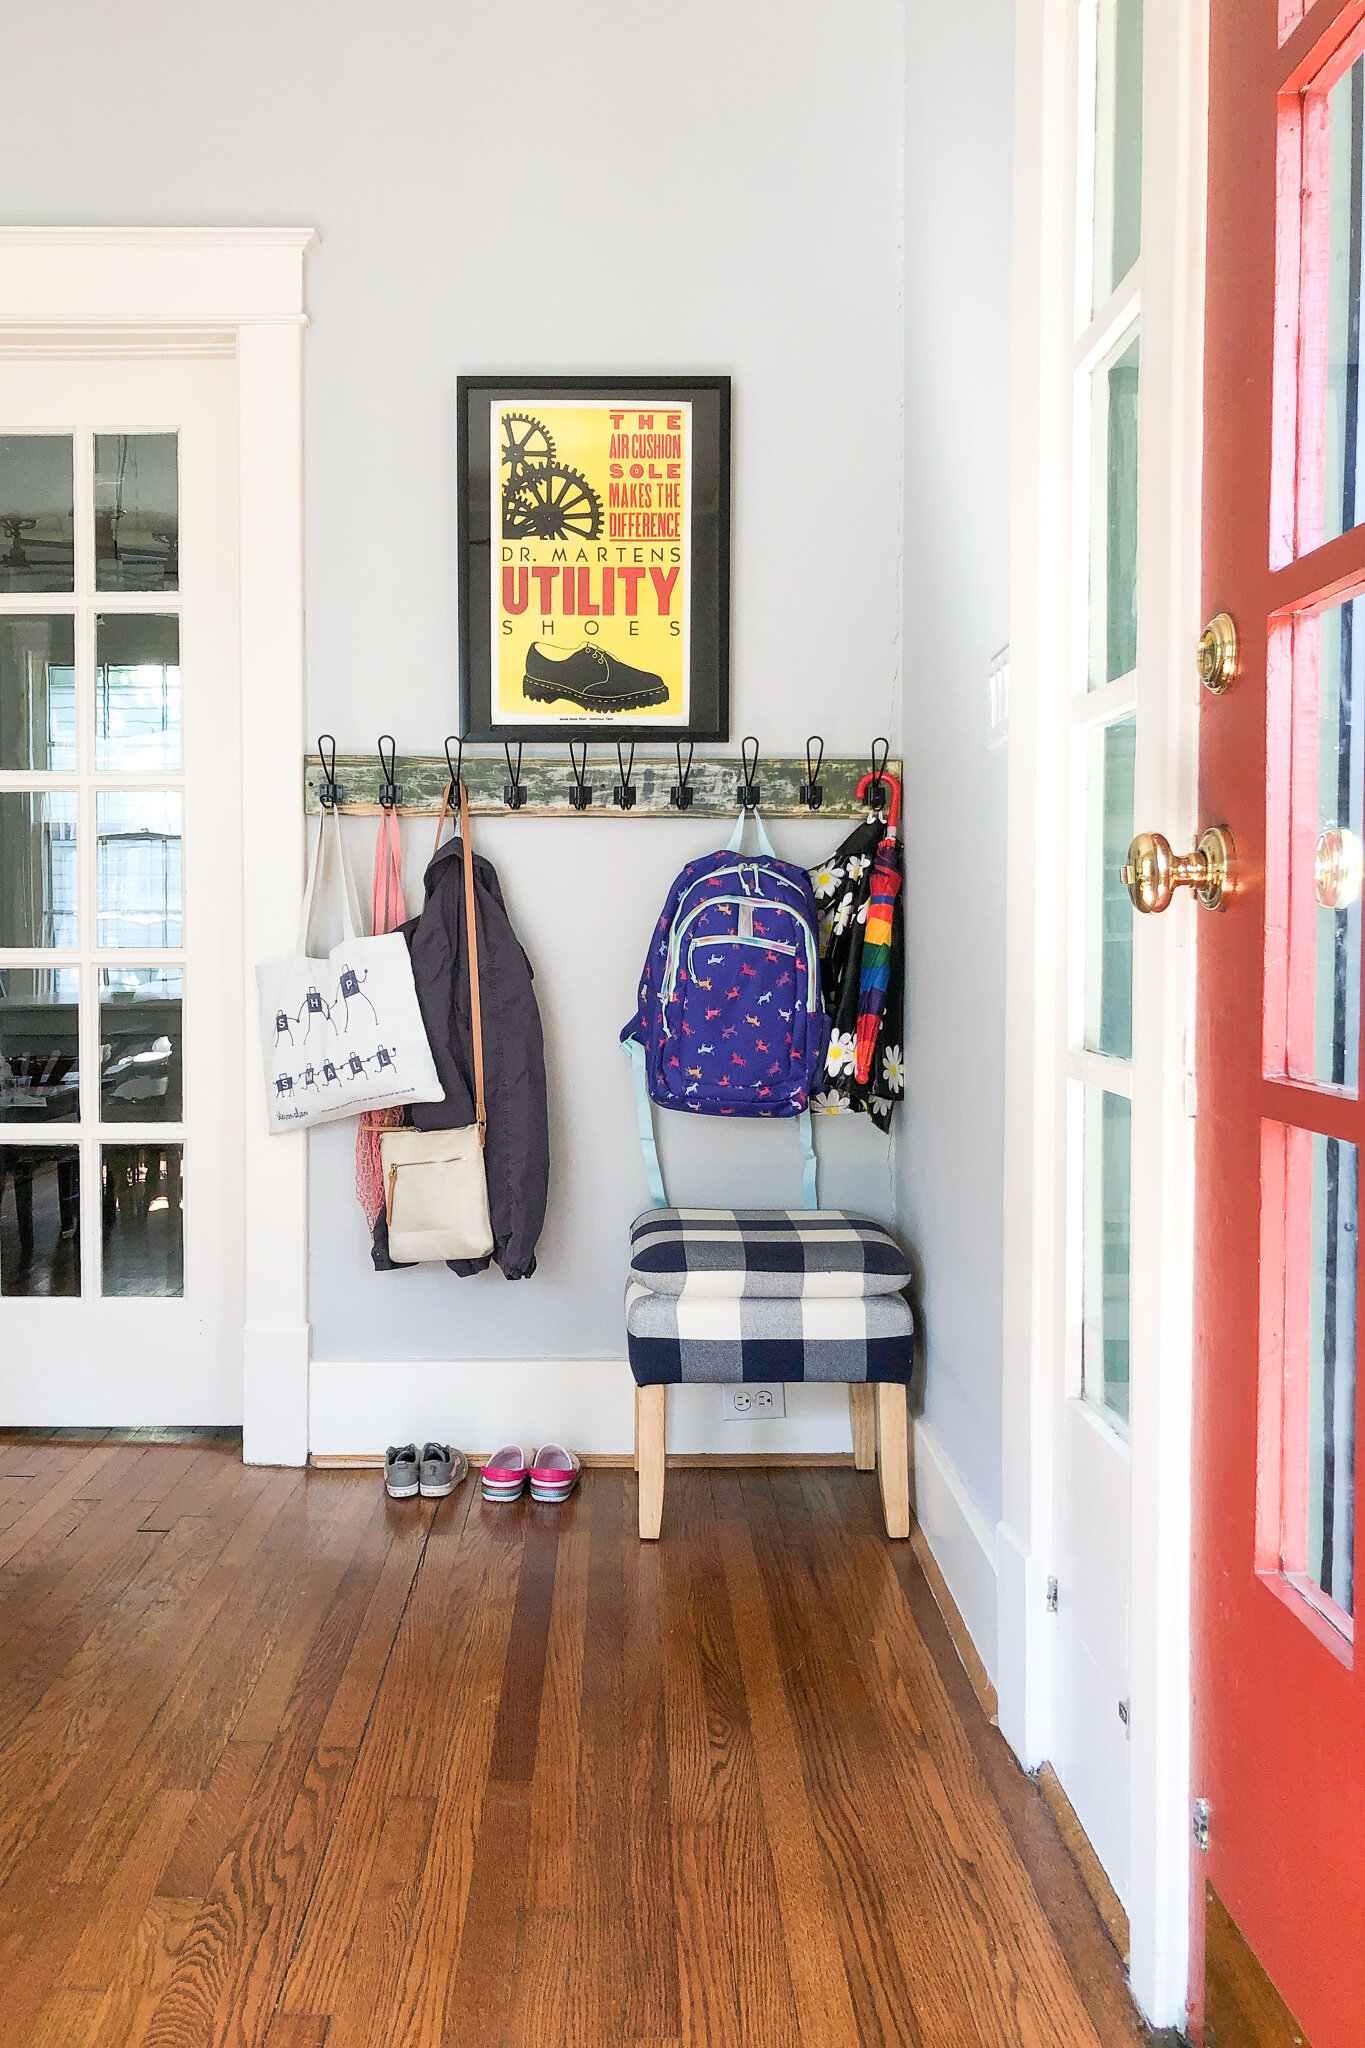 Creating a wall of storage hooks for wrangling our family's bags and outdoor gear - Here's how we made a mini-mudroom for less than $20! #schoolhousestyle #diydecor #organizationideas #backpackstorage #familystoragesolutions #colorfulhomedecor #mycuratedvibe #sodomino